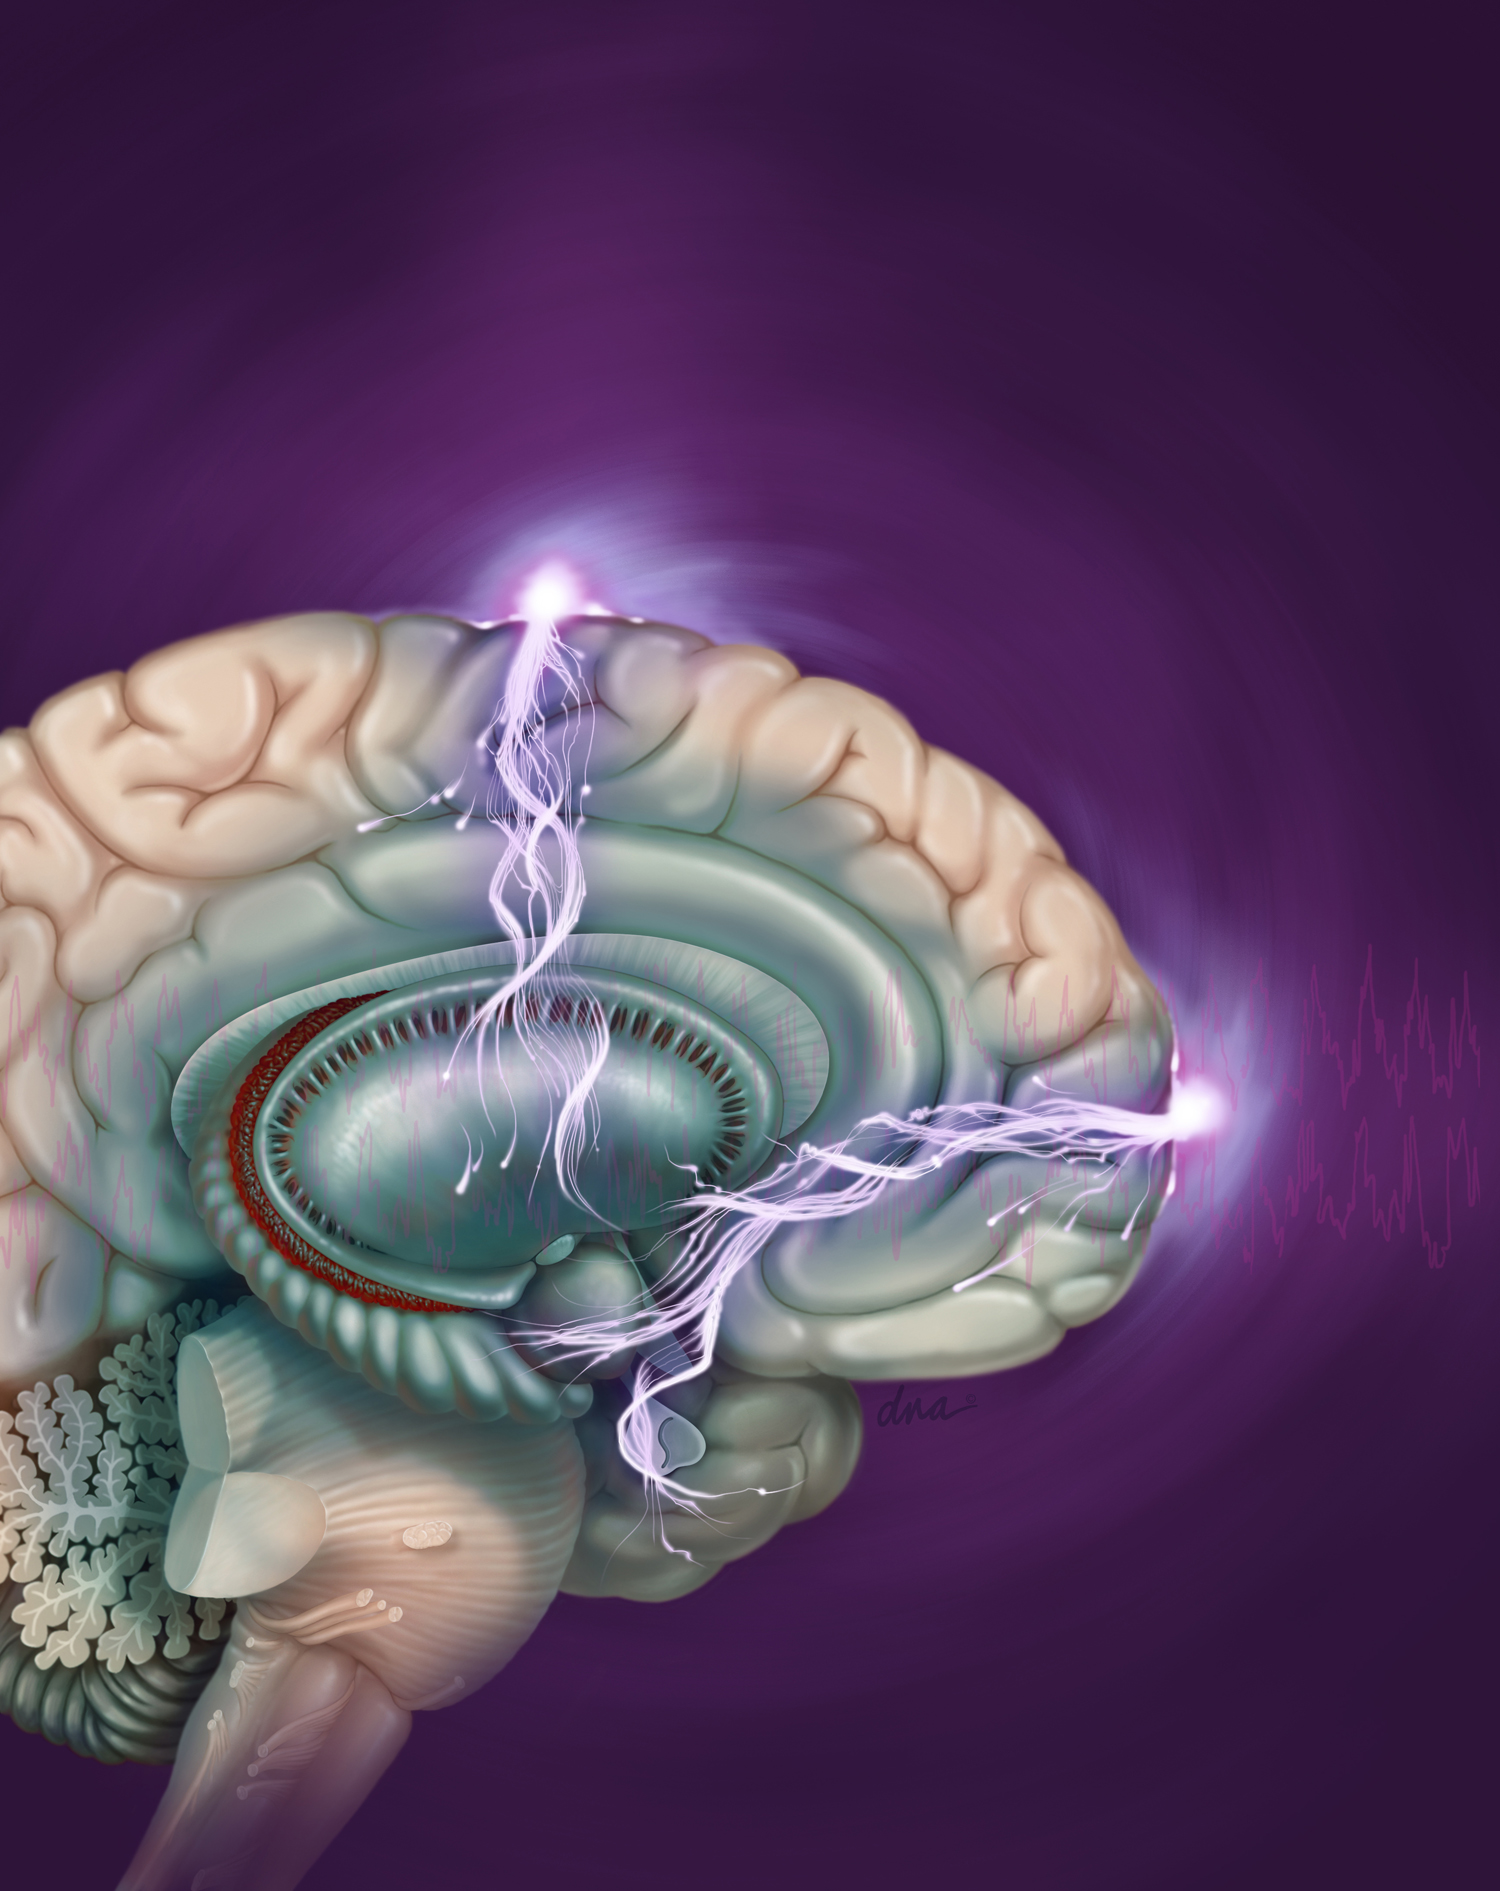 Electroconvulsive therapy (ECT) is recommended for use as a therapy for unresponsive severe depression. The mode of action is not understood. Seizures are electrically induced in patients under anesthesia. Patients have a significant risk of memory loss. Differences in application of treatment come from variation in electrode placement, electrical wavefront and frequency of therapy.